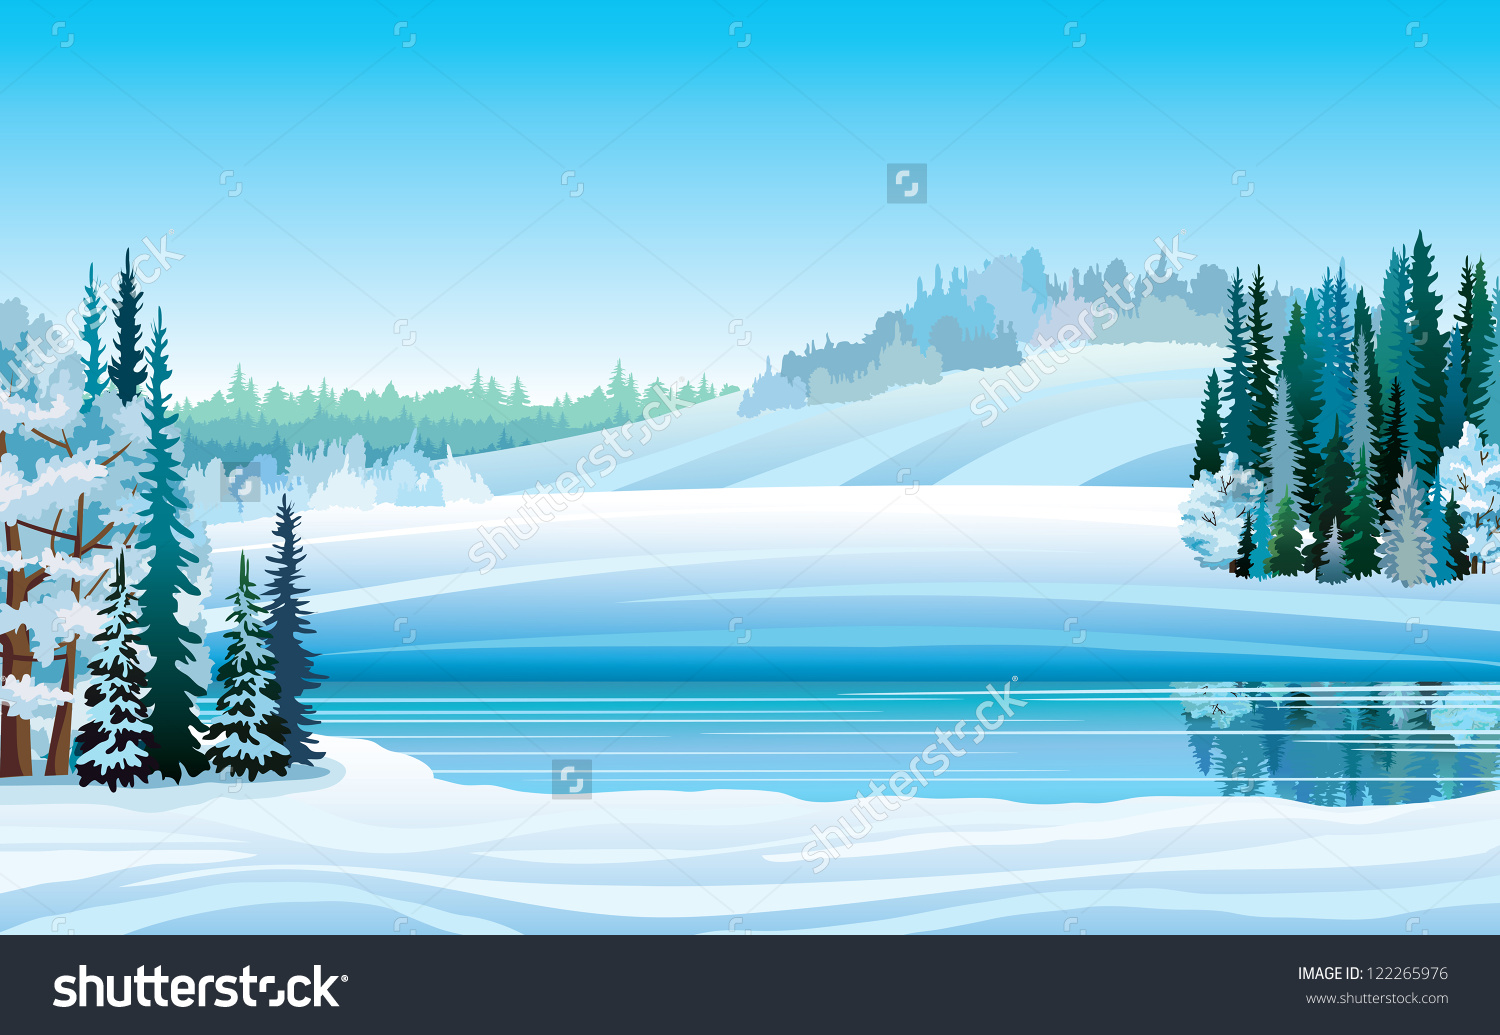 Winter Landscape Vector Clip Art.